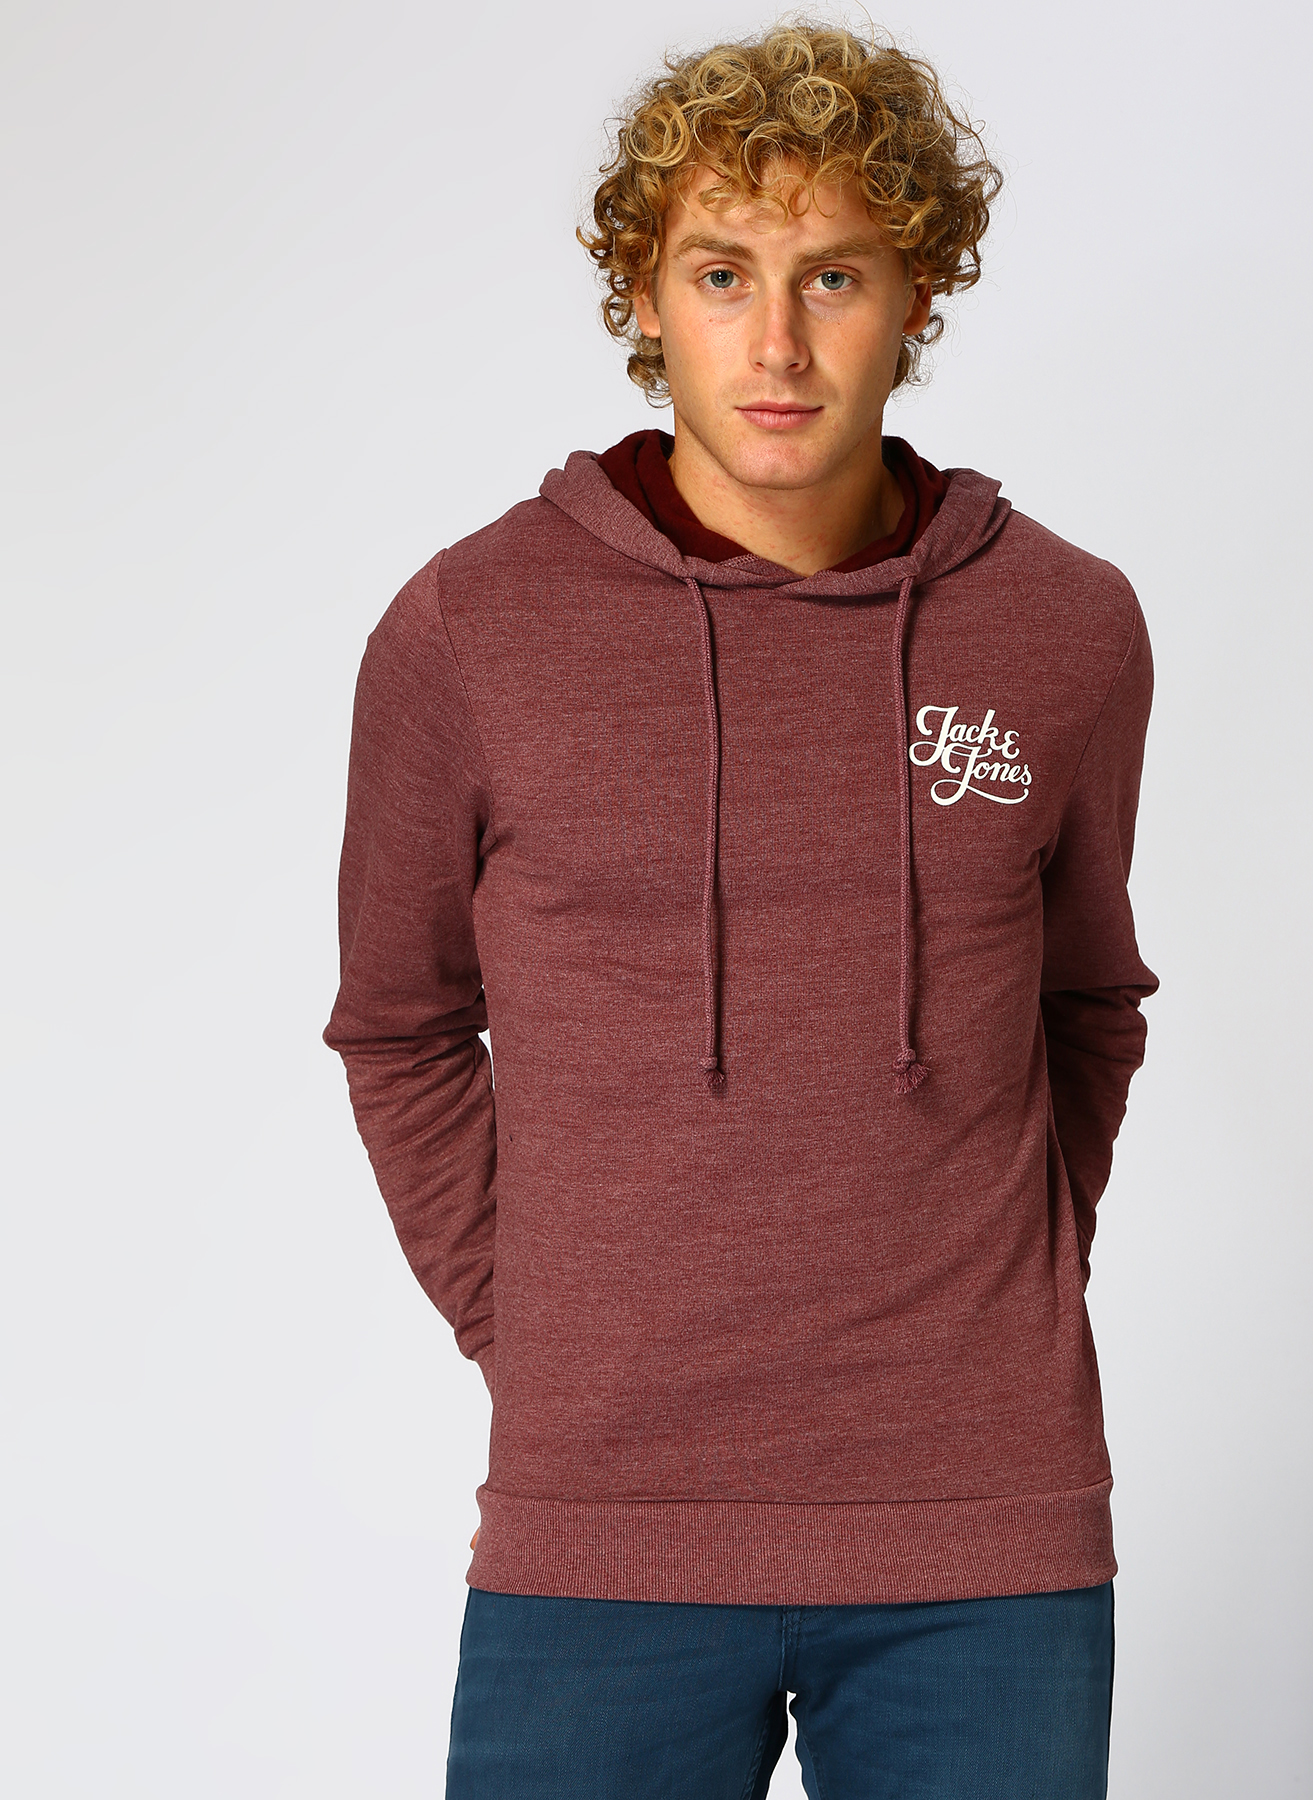 Jack & Jones Galions Sweat Hood Brushed Sweatshirt XL 5001752905004 Ürün Resmi